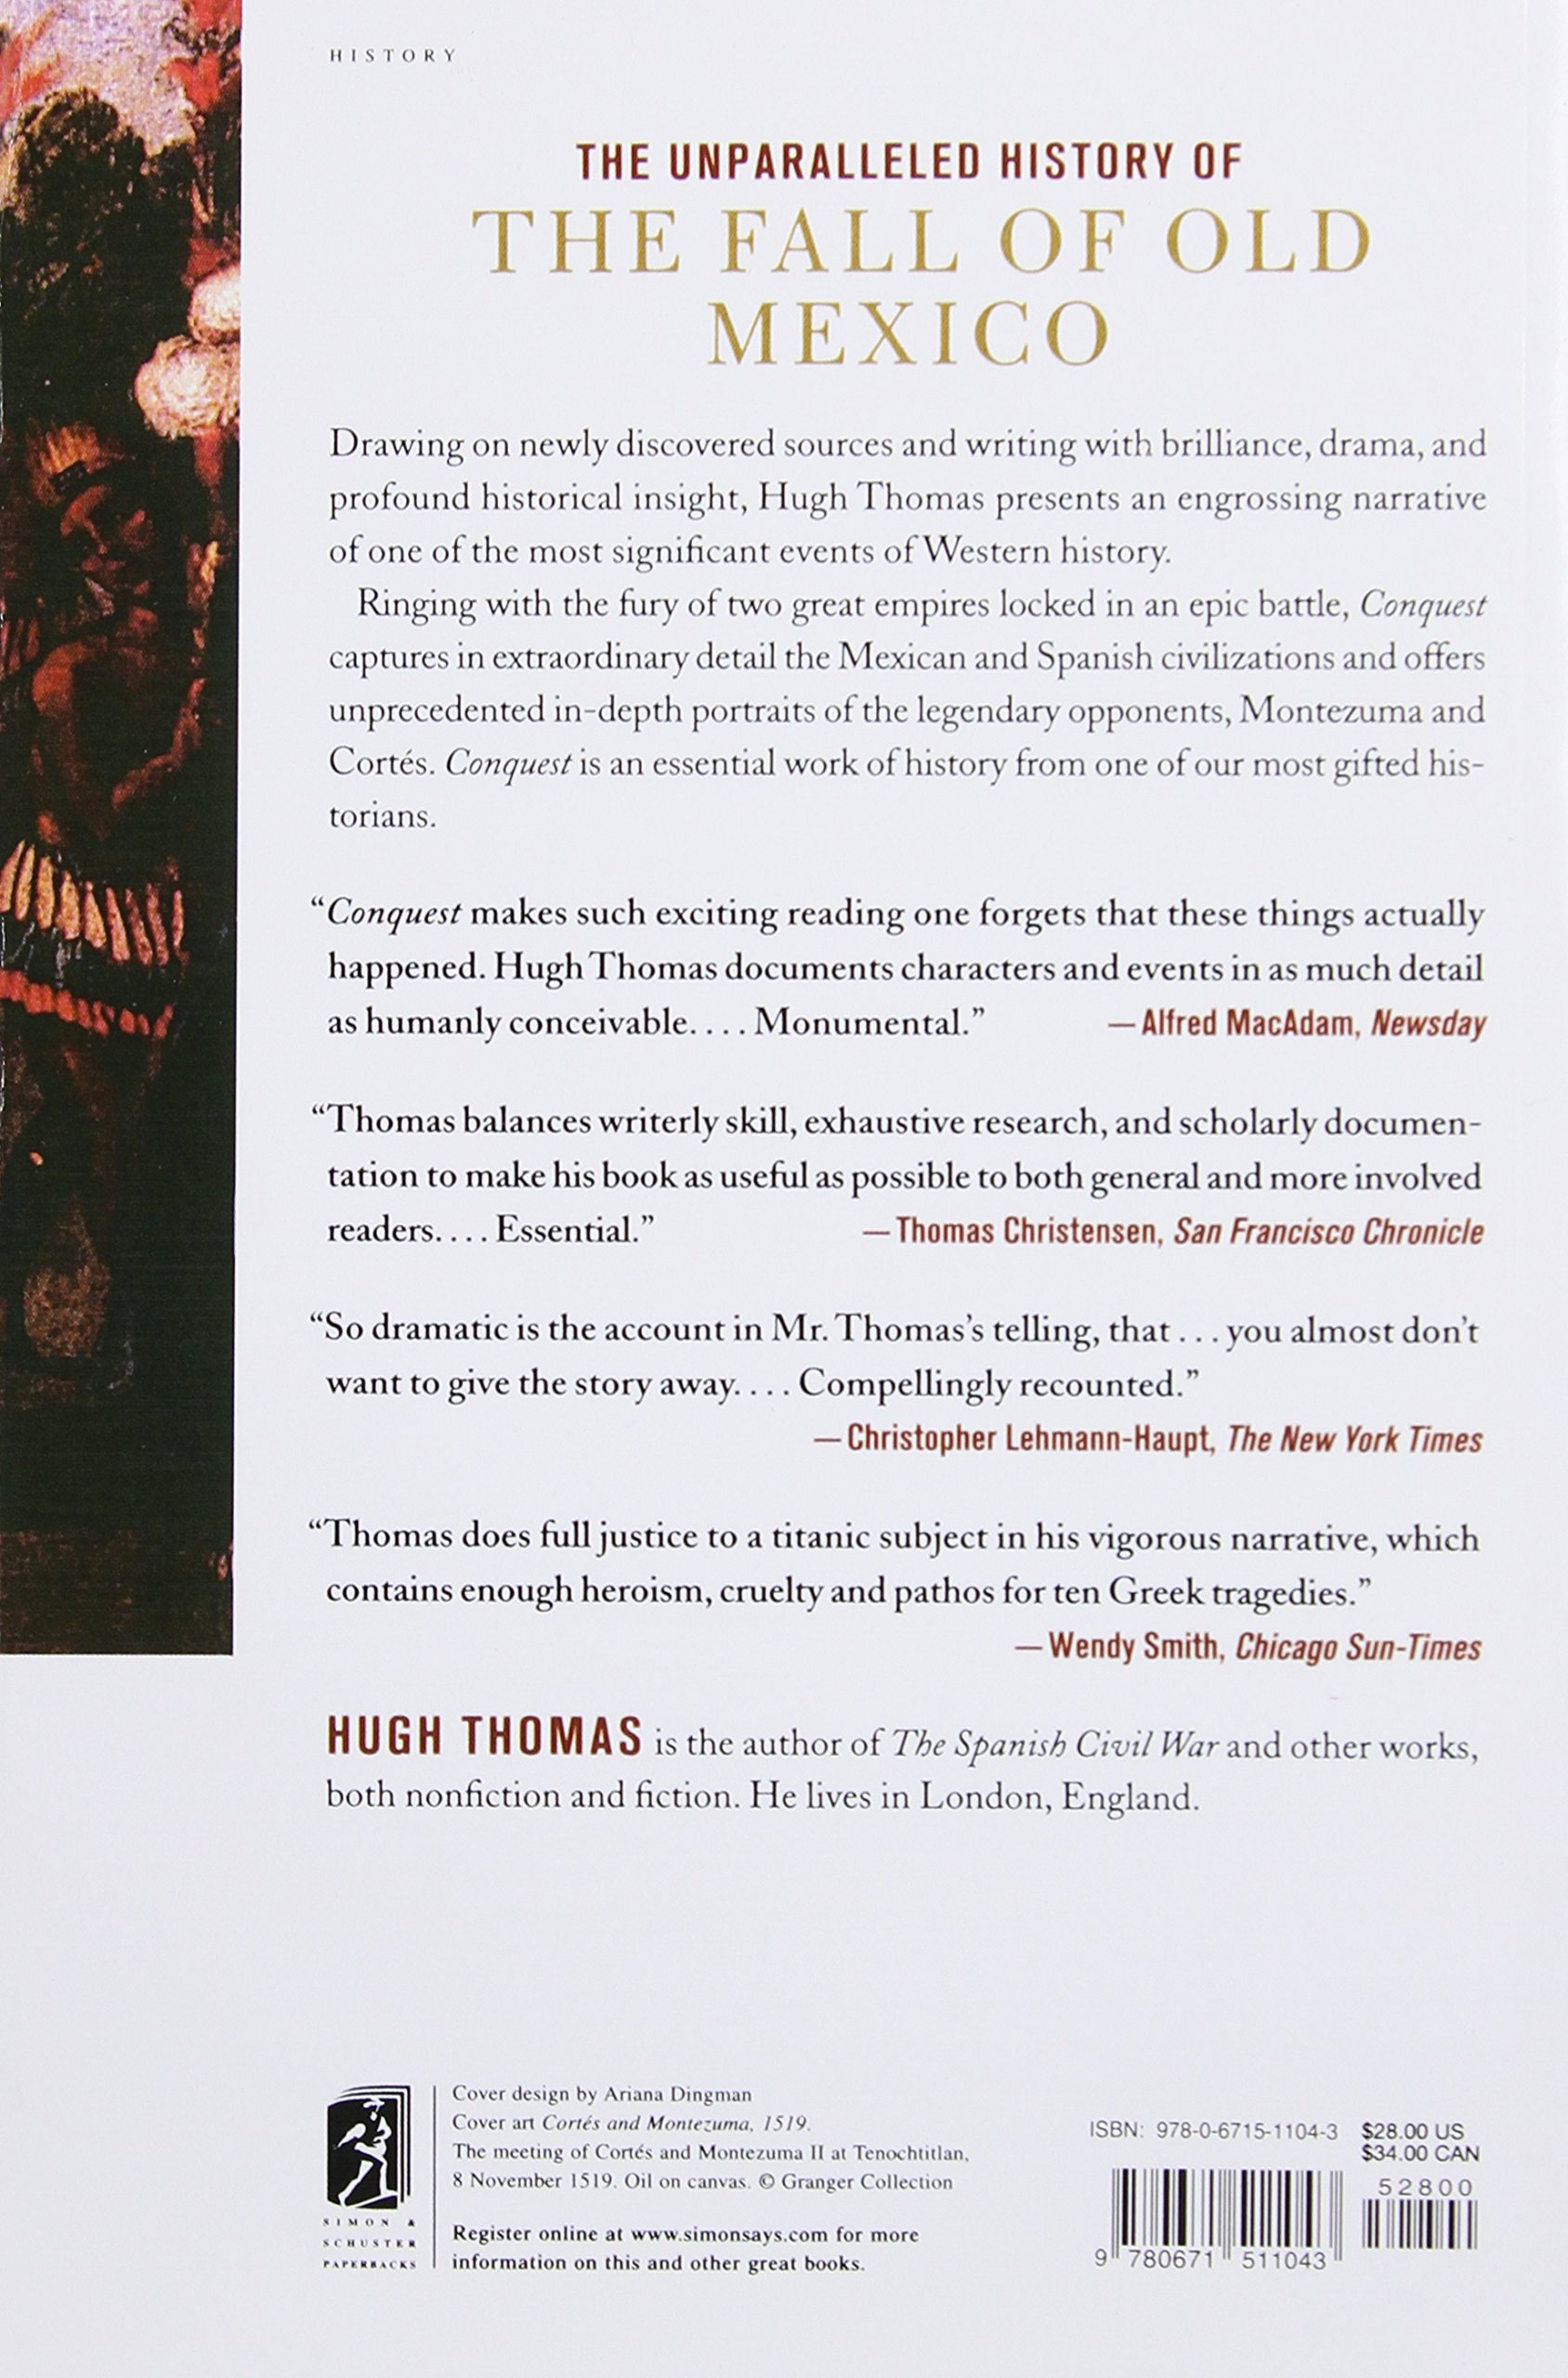 Background information on mexico - Conquest Cortes Montezuma And The Fall Of Old Mexico Hugh Thomas 9780671511043 Amazon Com Books